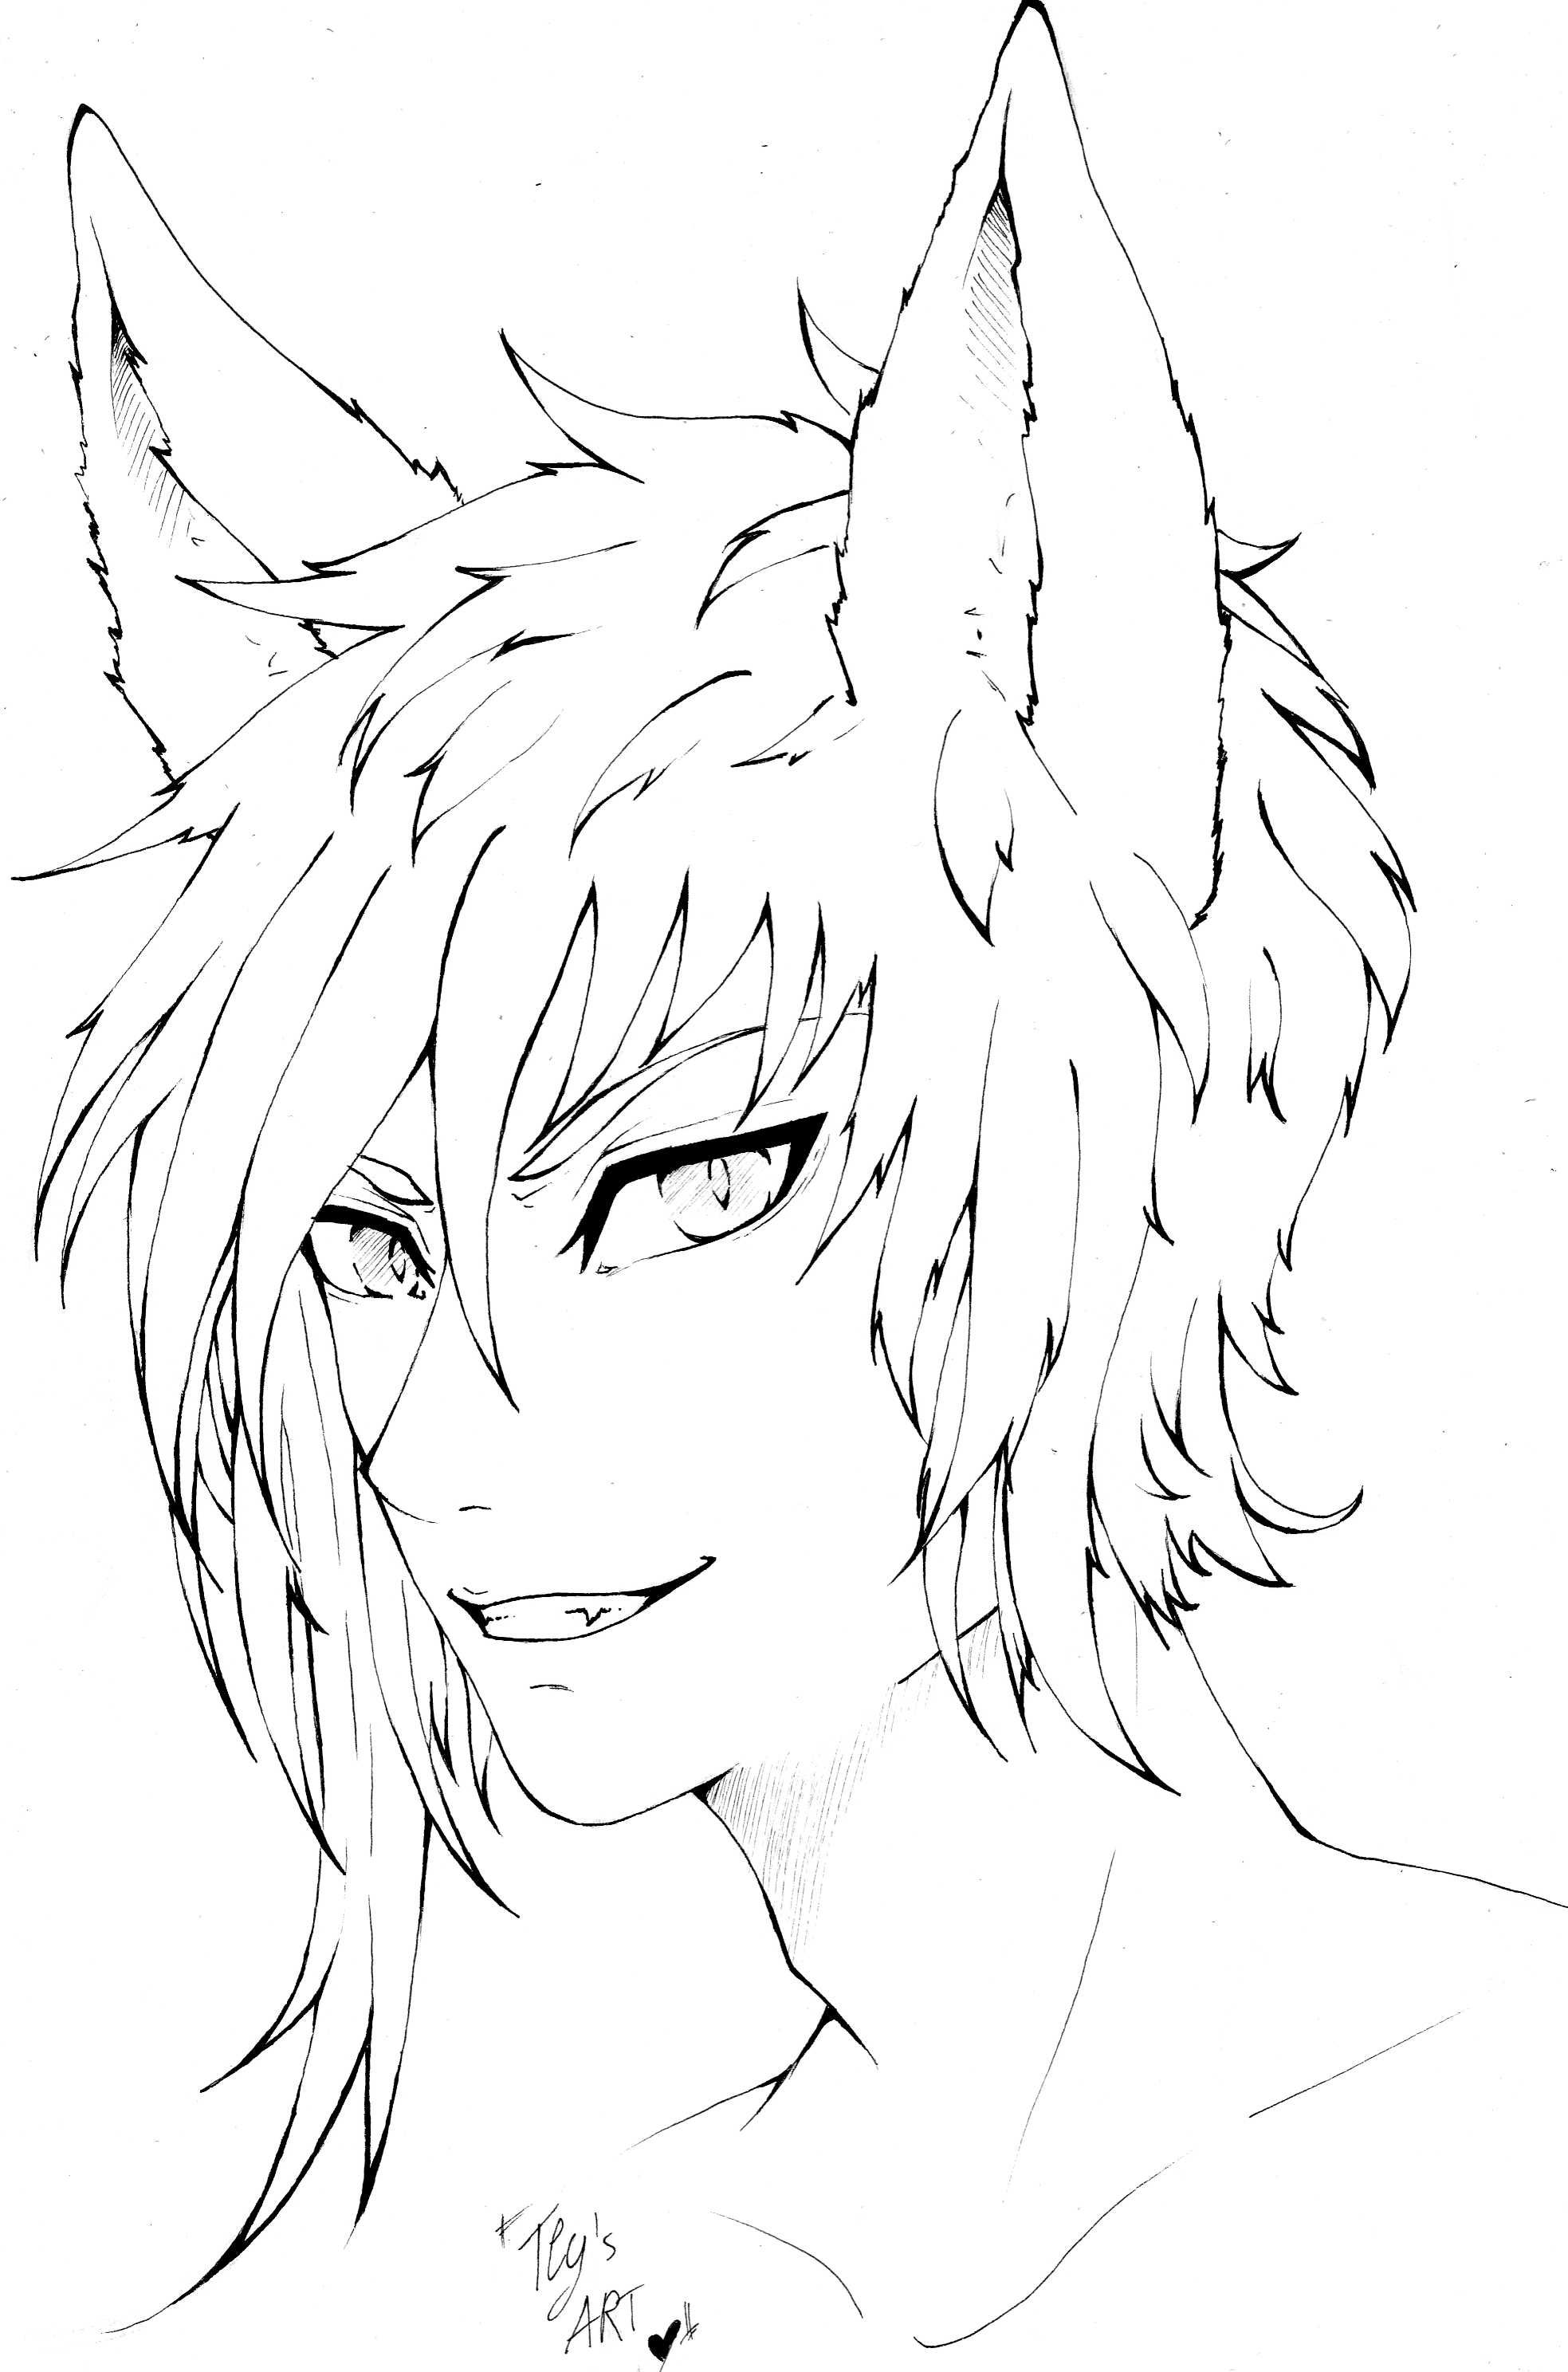 Fox Boy Anime Manga Oc Lineart Cute Ink Anime Art Dark Anime Lineart Cat Coloring Page